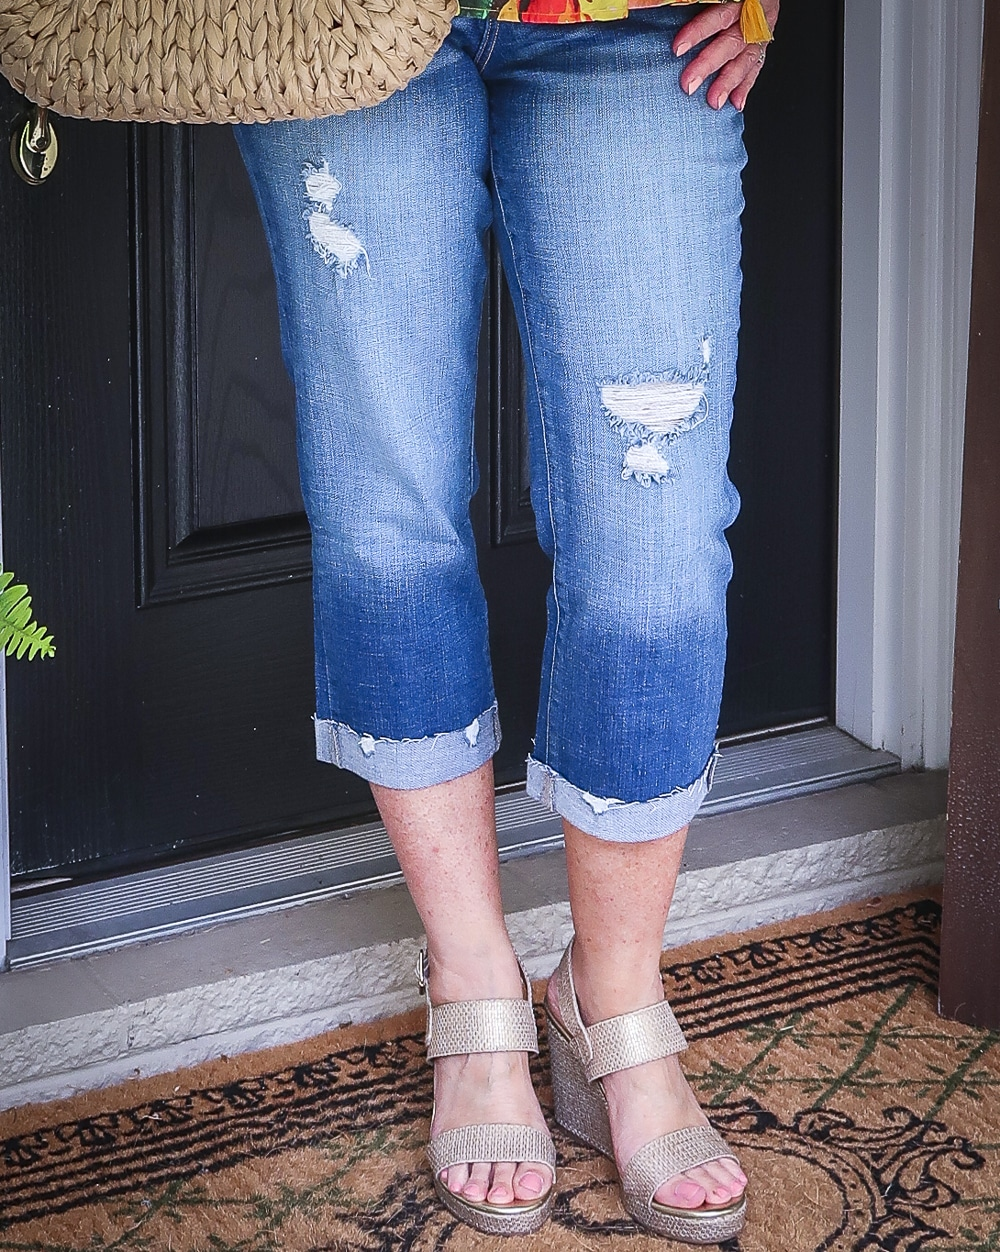 Fashion Blogger 50 Is Not Old is wearing a pair of distressed crop jeans with gold espadrille wedges from Walmart